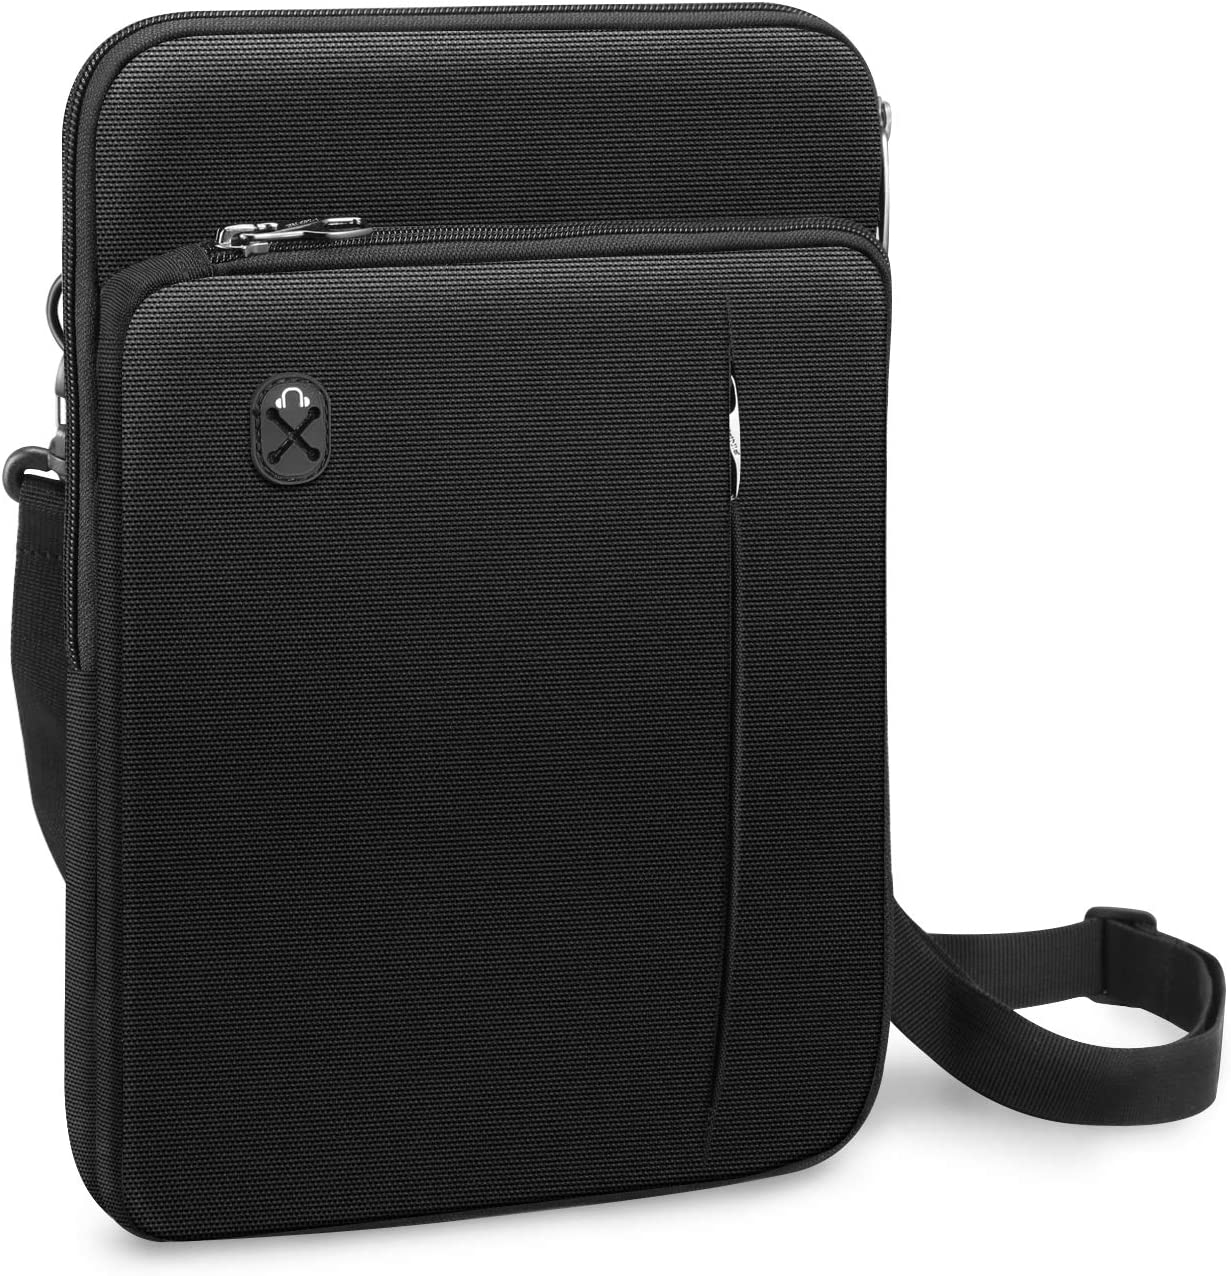 "FINPAC 12.9-13 Inch Tablet Laptop Sleeve Case, Briefcase Shoulder Bag for 12.9"" New iPad Pro (2018-2020) / MacBook Air 13 A2179 A1932 / MacBook Pro 13 (2016-2020) / Surface Pro X/7/6/5 (Black)"